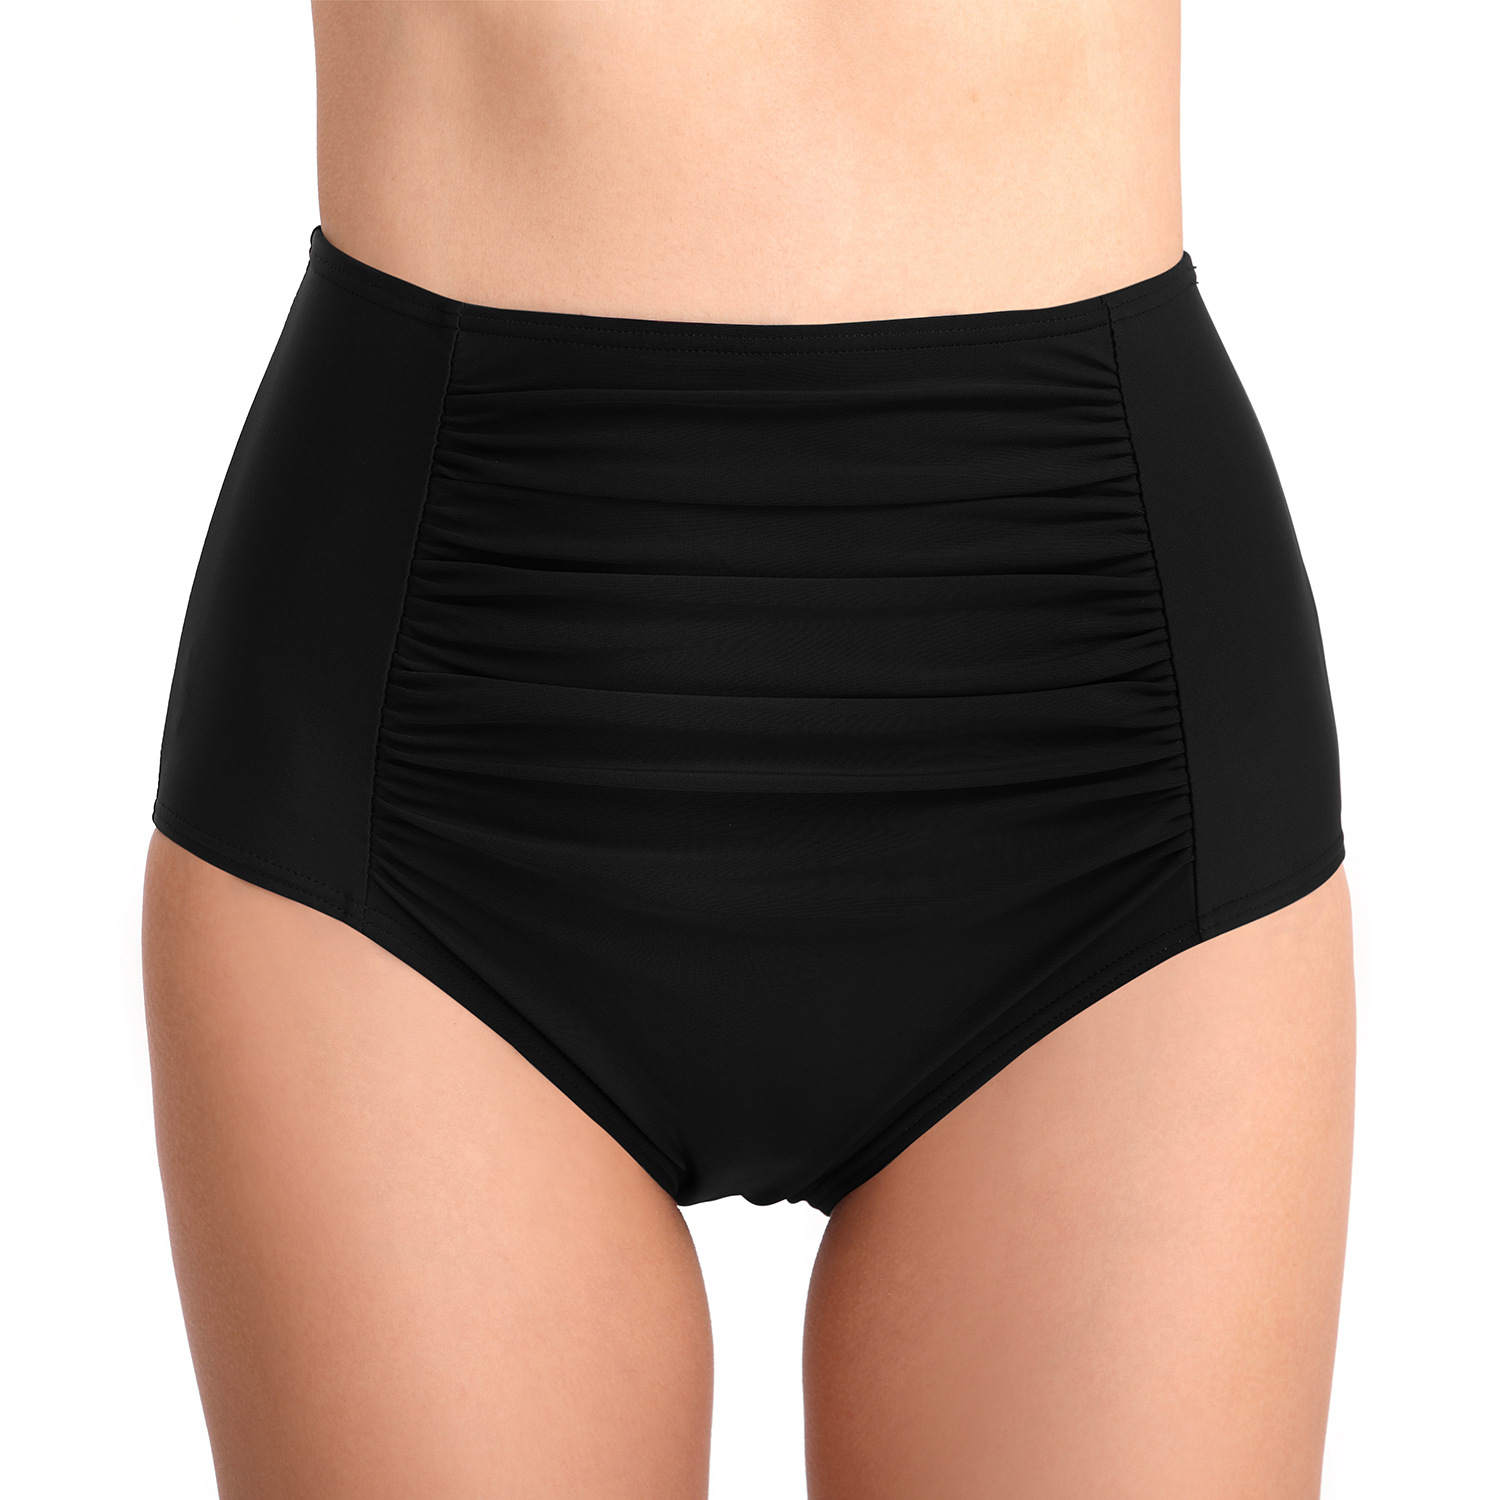 2020 Hot Selling Swimming Trunks Pleated Tight-Style Swimming Trunks Sheath Belly Holding High-waisted Swim Briefs Women's